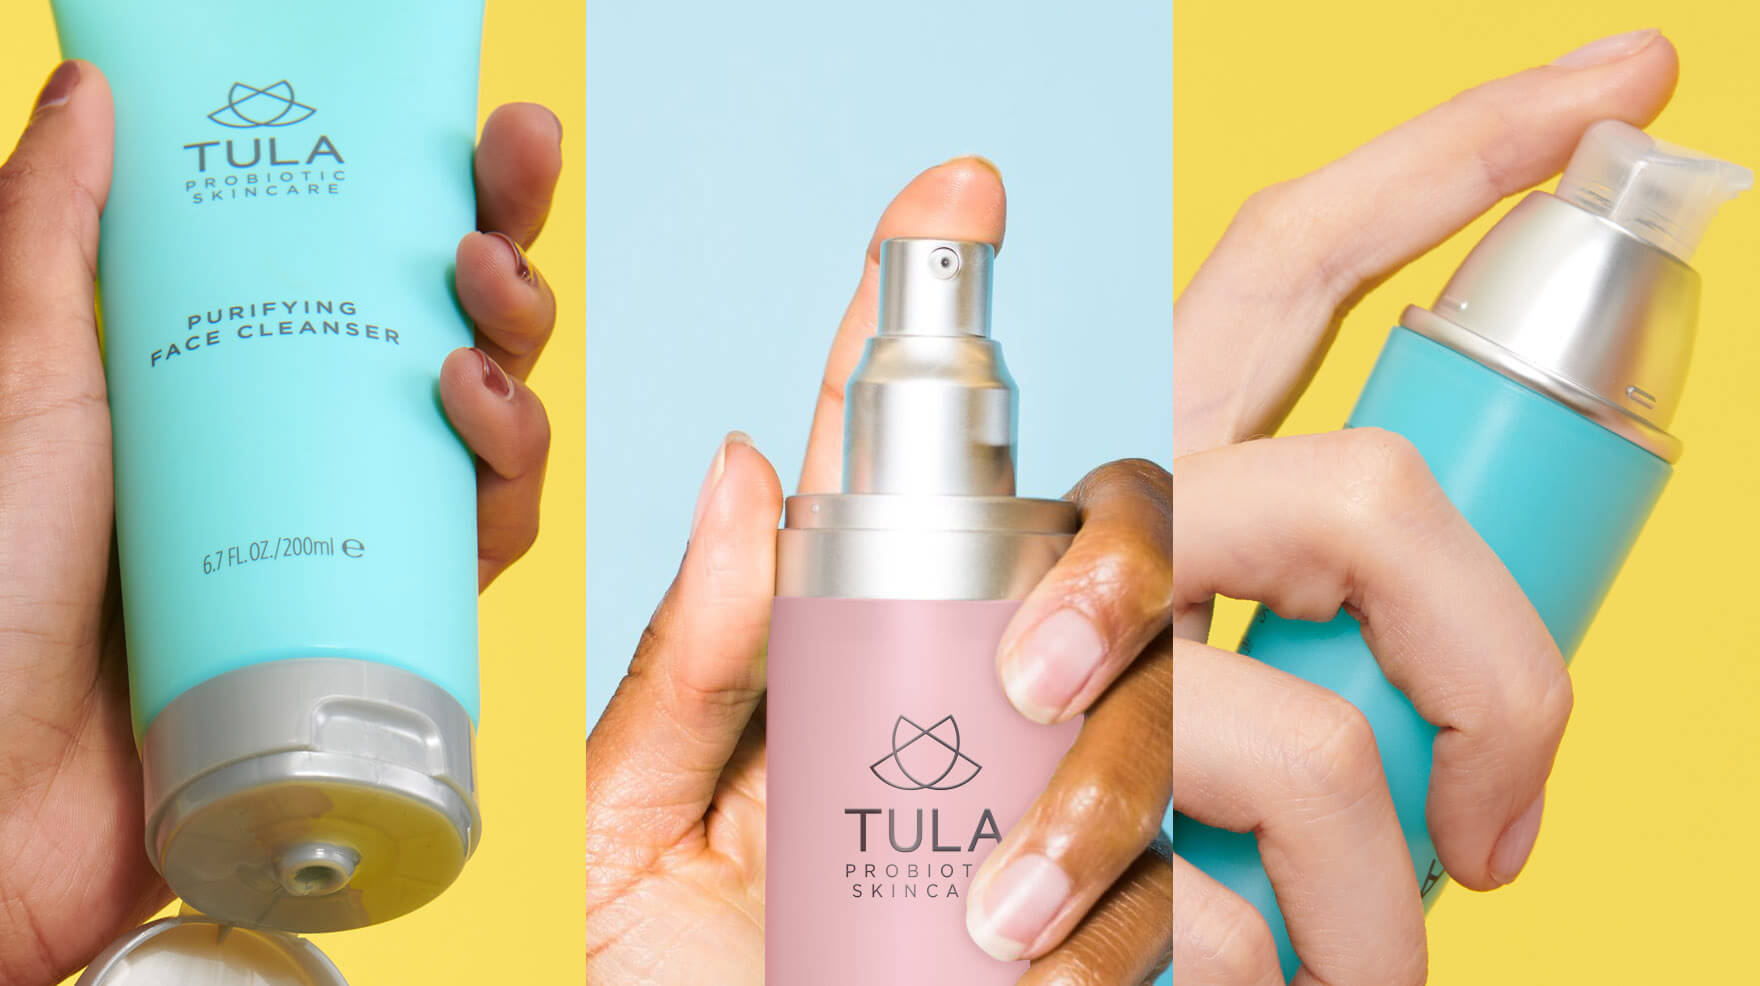 TULA acne clearing kit how to use